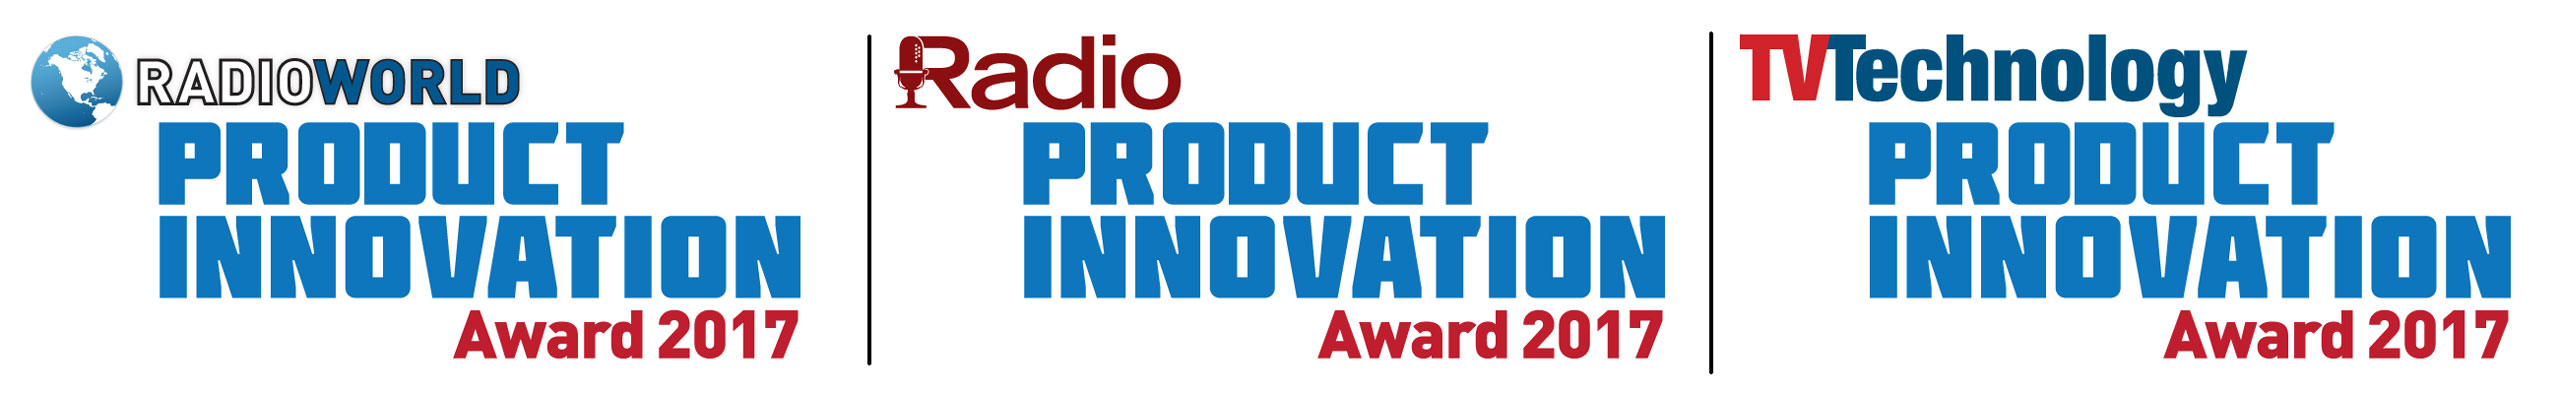 RW RADIO TVT Prod Innovation Award logo 2017 rev